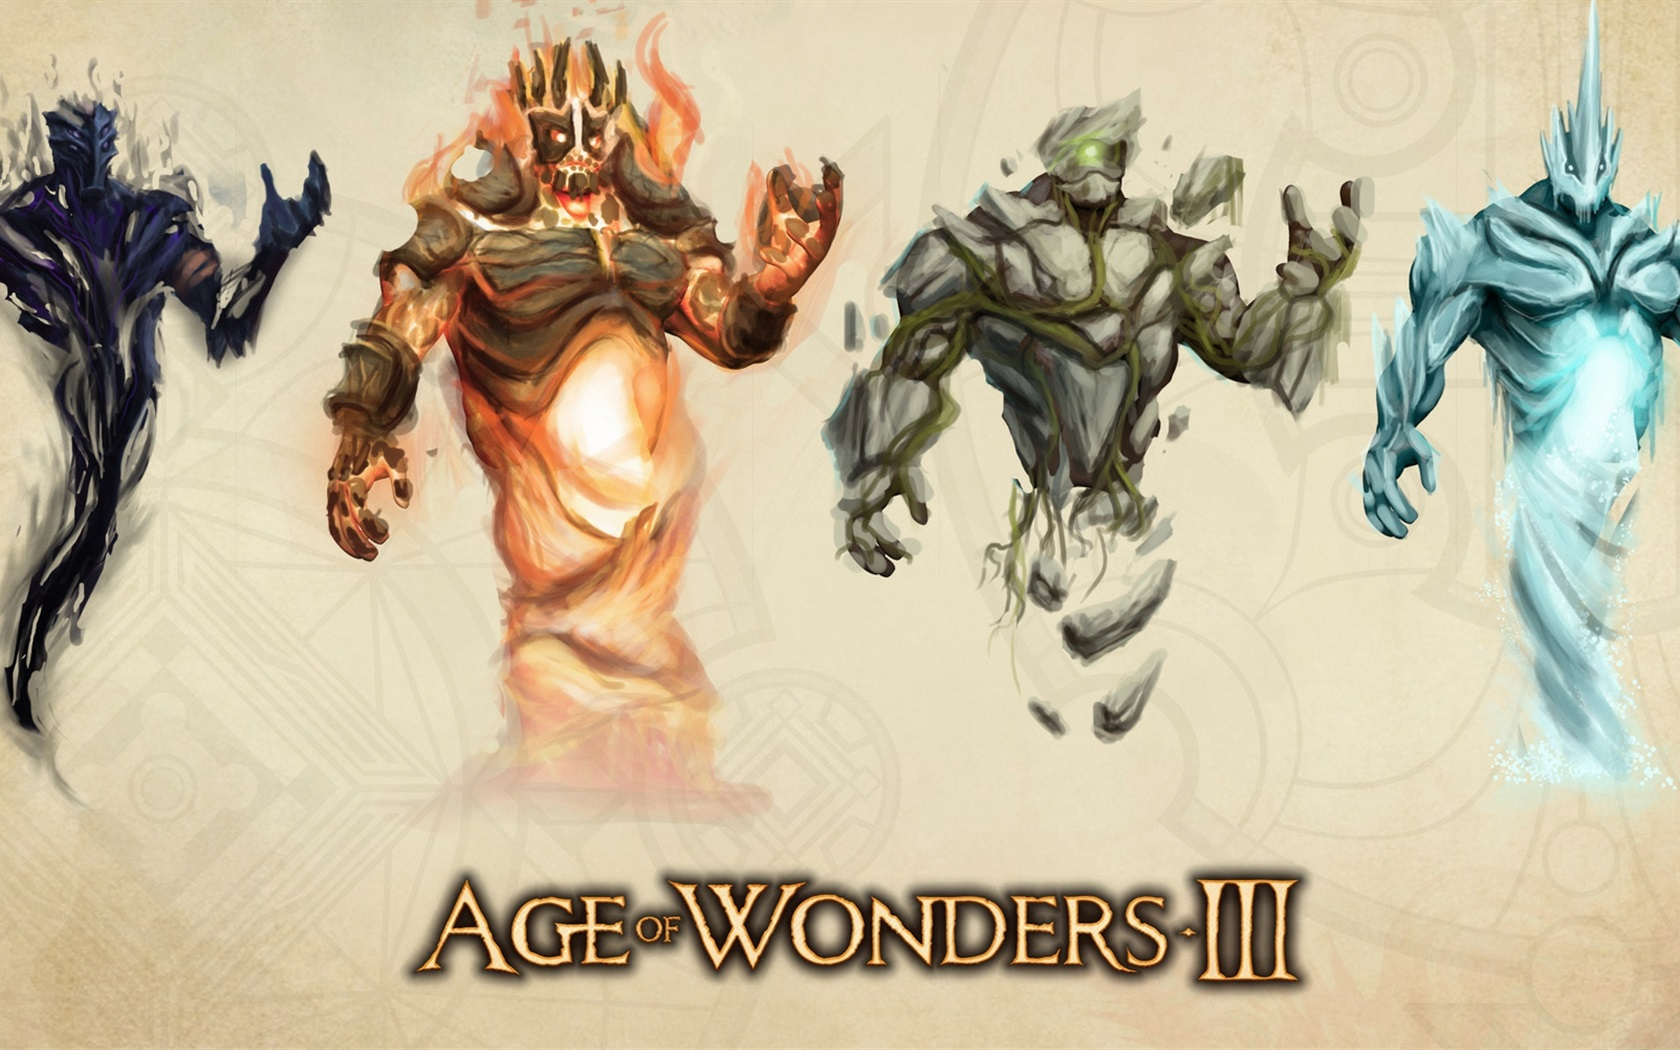 Wallpaper Age Of Wonders 3 1680x1050 Hd Picture Image